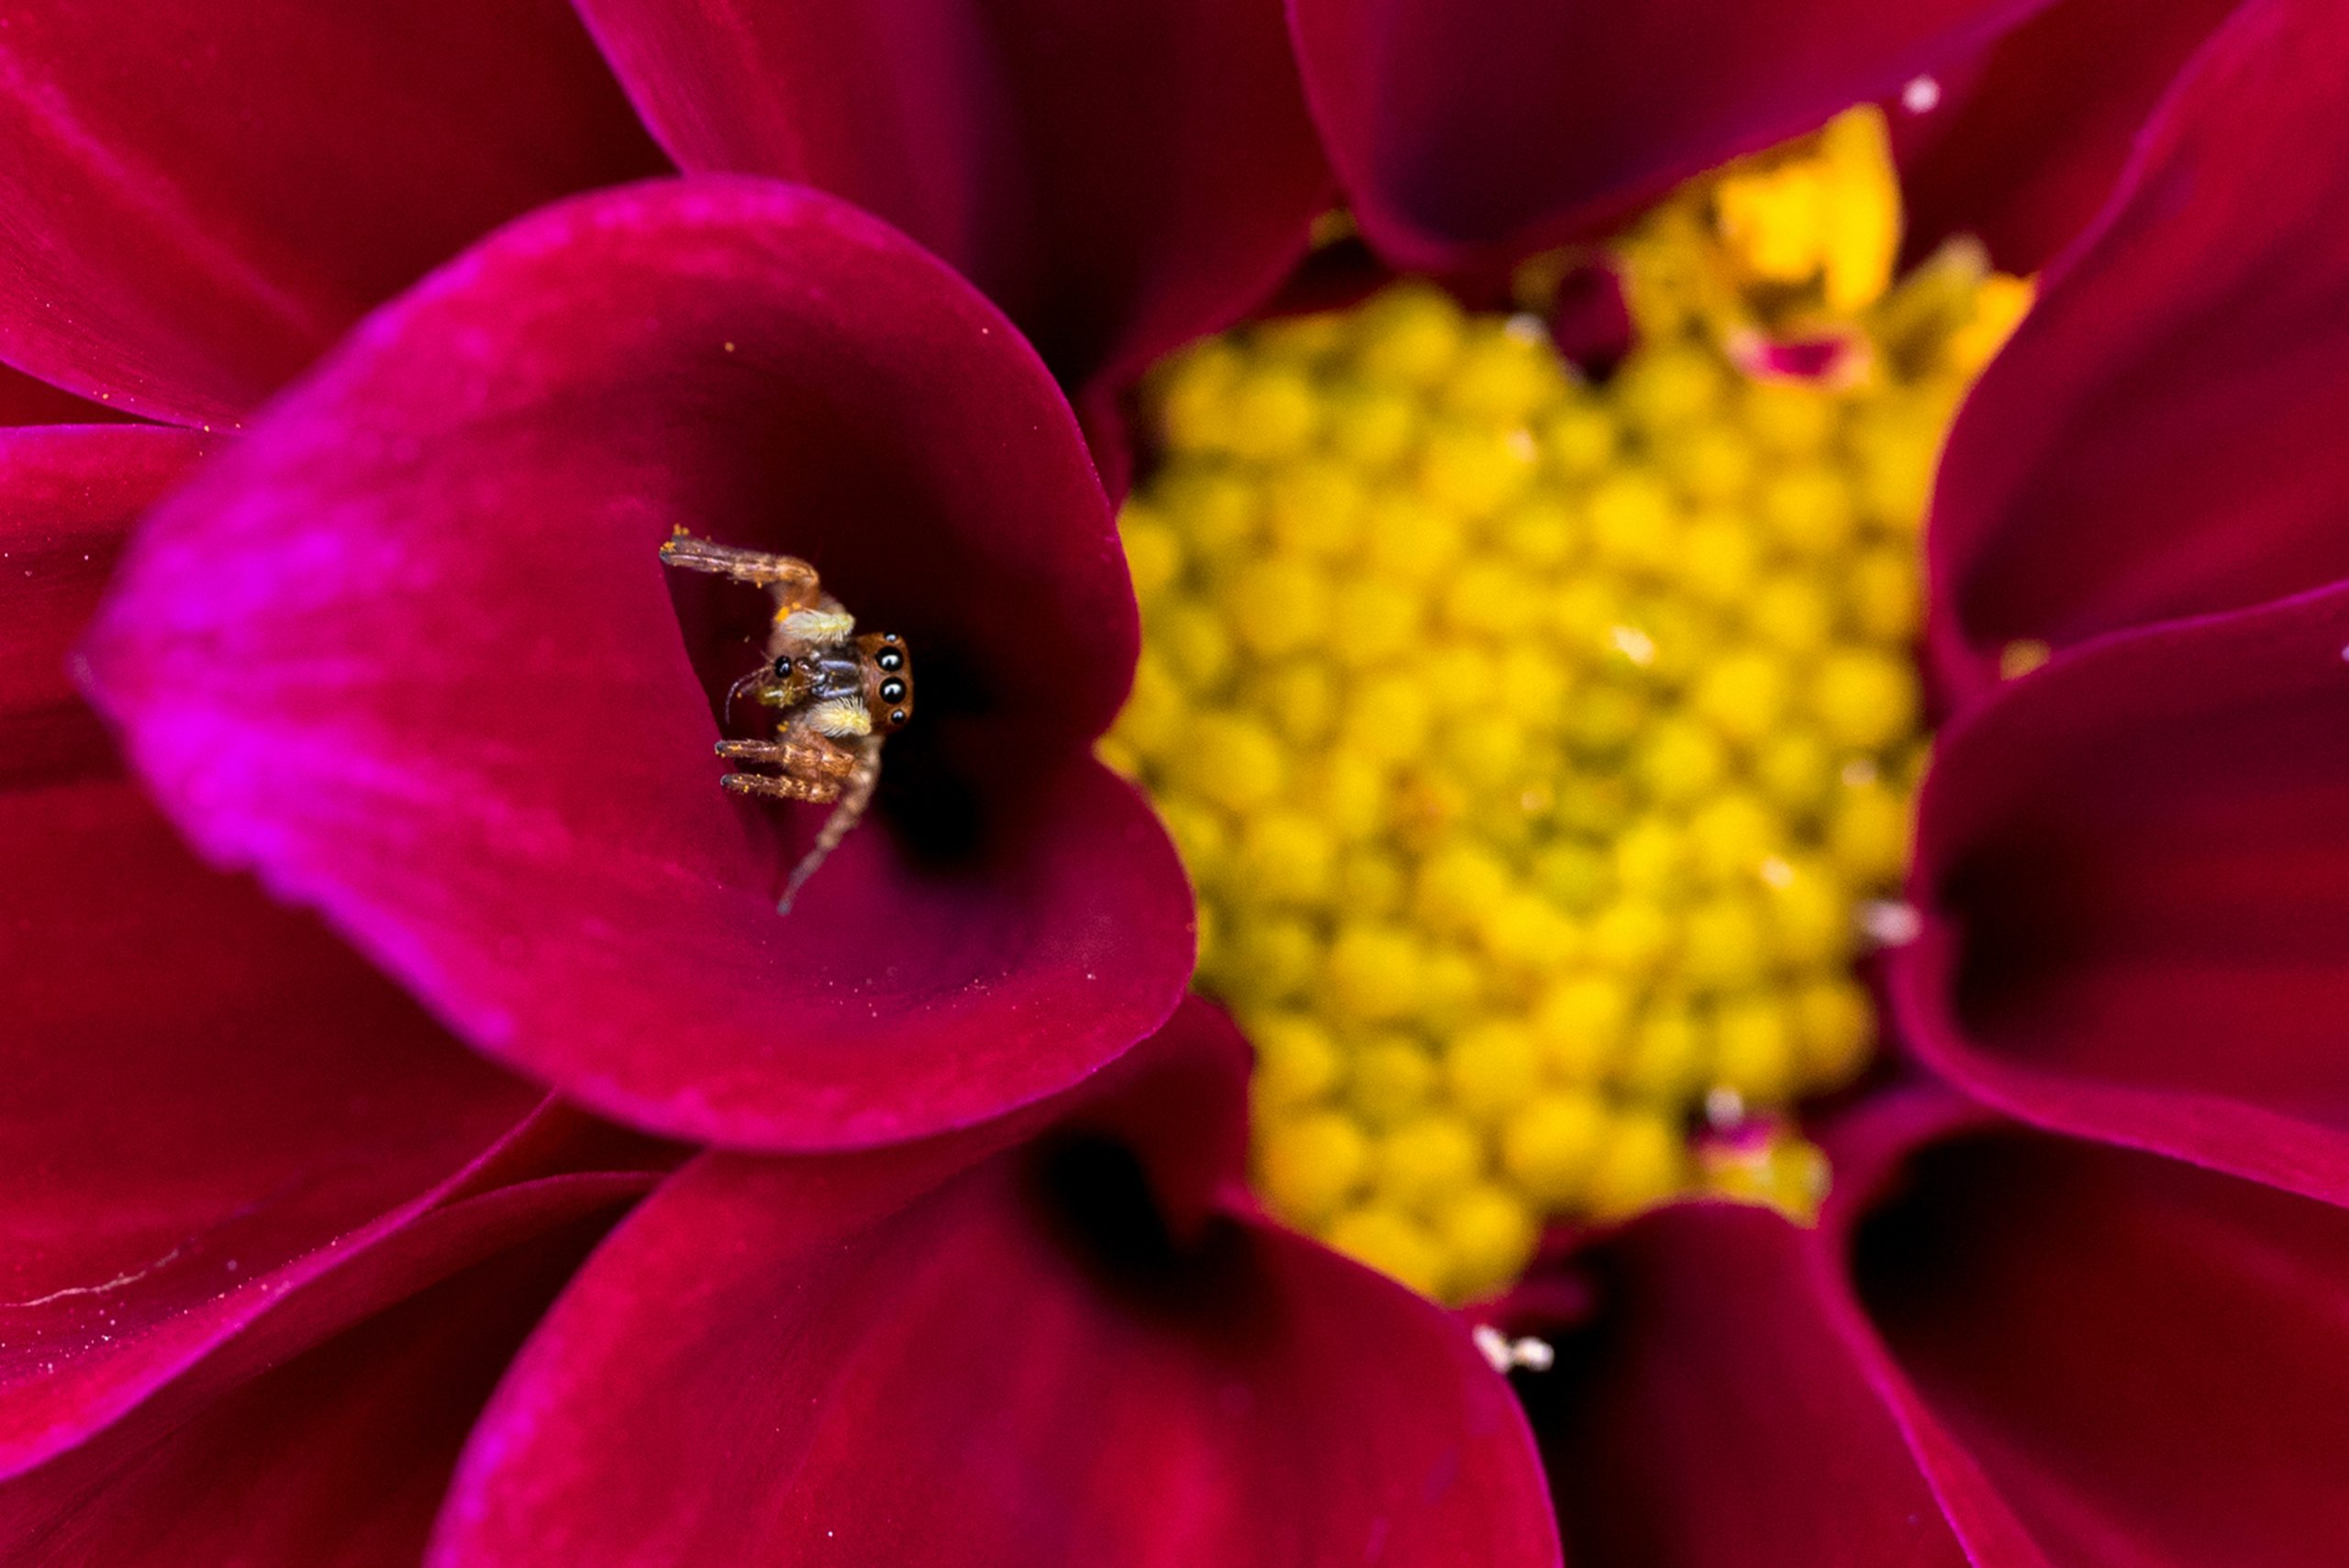 Small spider lurking in the petal of flower